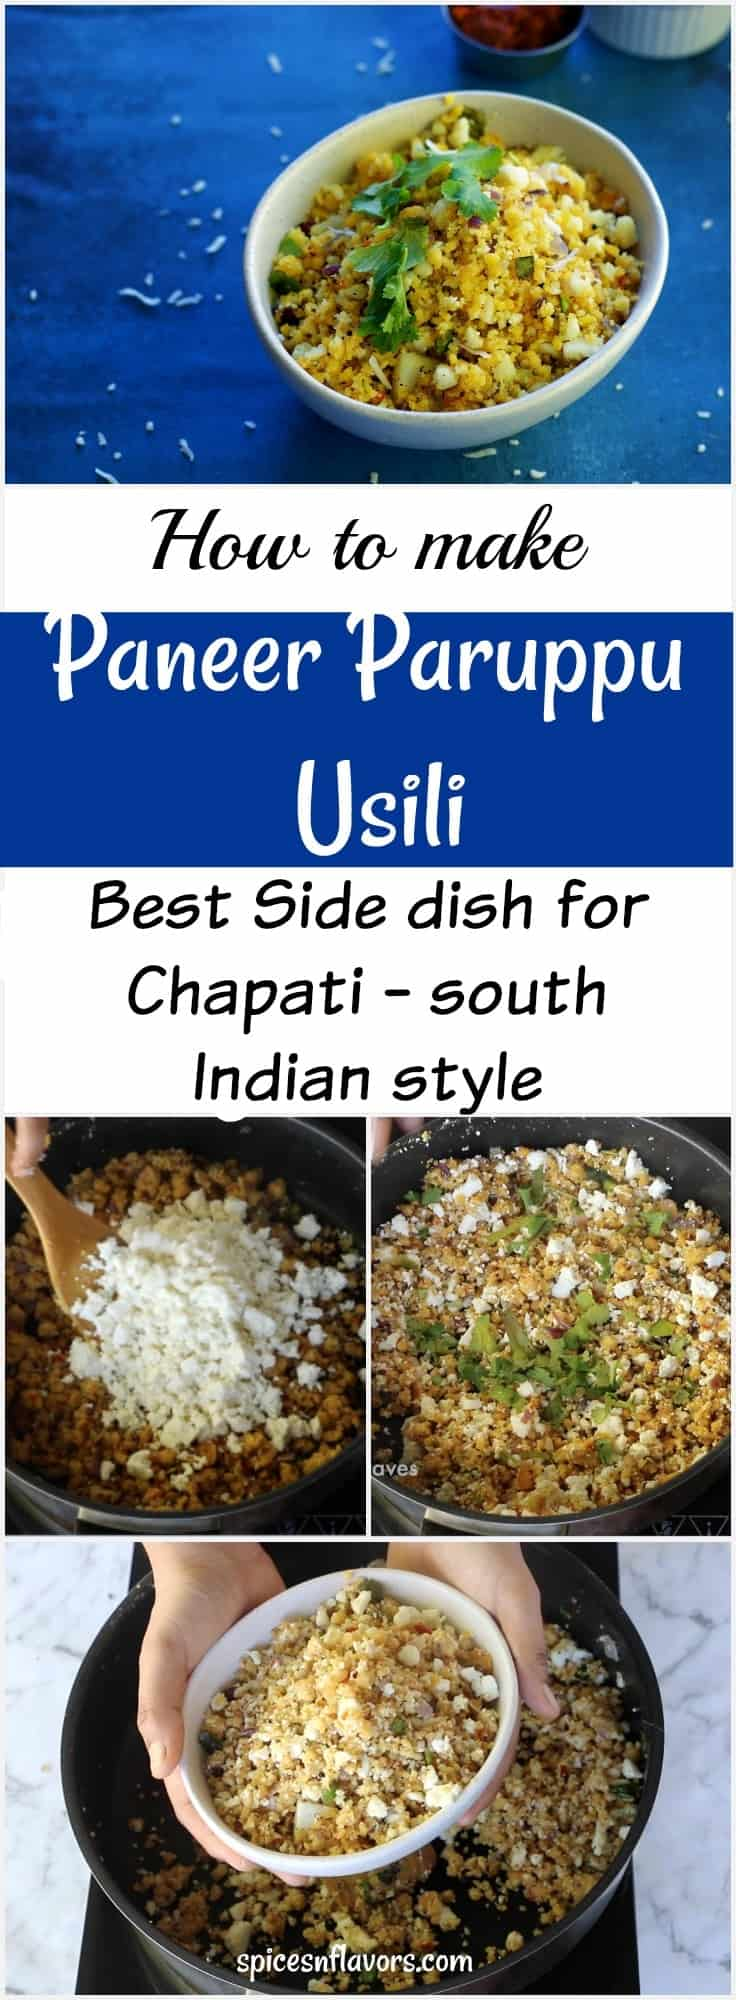 paneer paruppu usili south indian tamil brahmin style beans paruppu usili dry sabzi that goes well with rice, roti and phulka. side dish for chapati